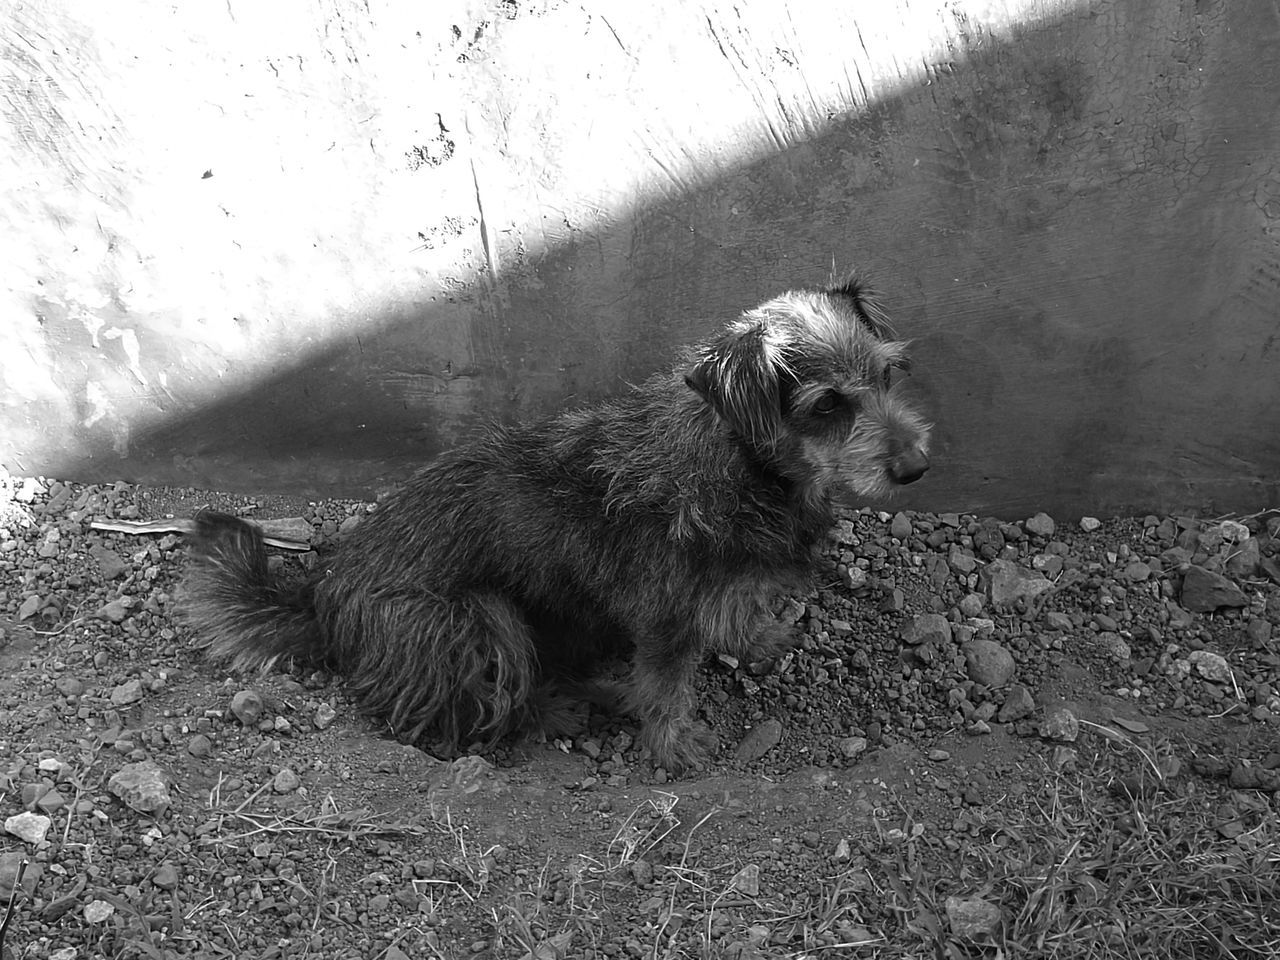 domestic animals, animal themes, pets, dog, one animal, mammal, day, no people, outdoors, sitting, nature, close-up